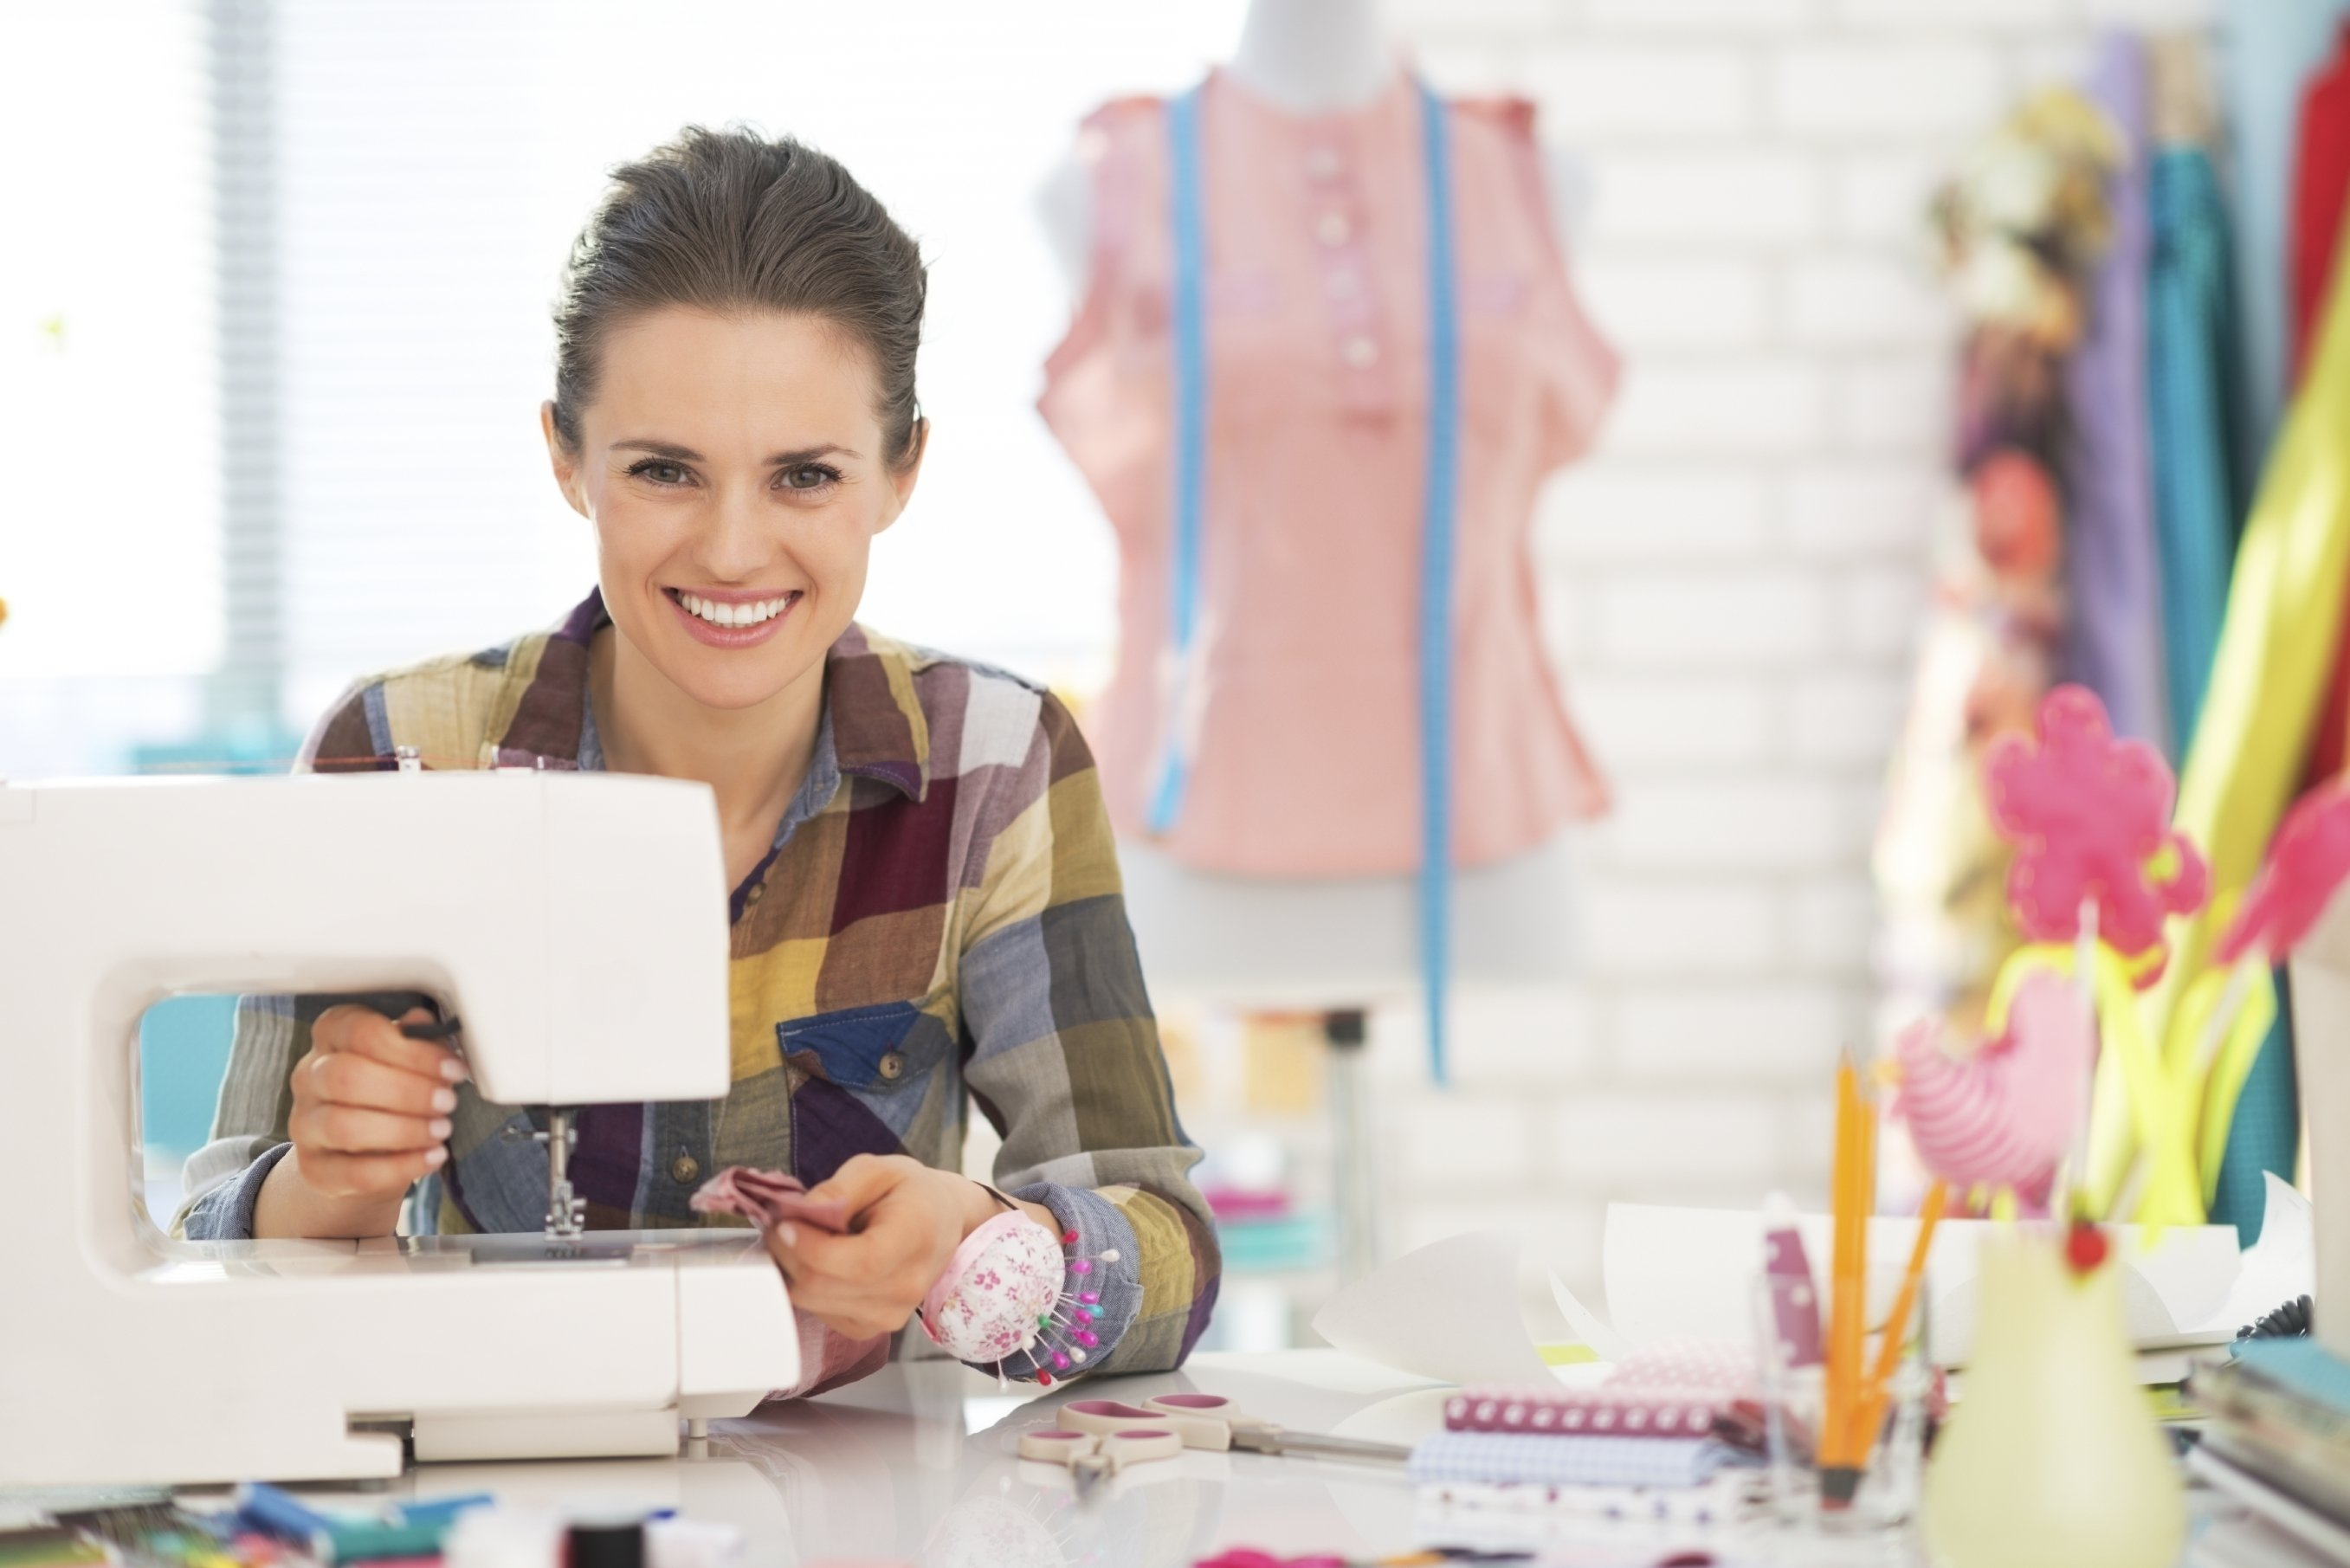 10 Unique At Home Business Ideas For Women business ideas for stay at home moms luxury ideas for home business 2020